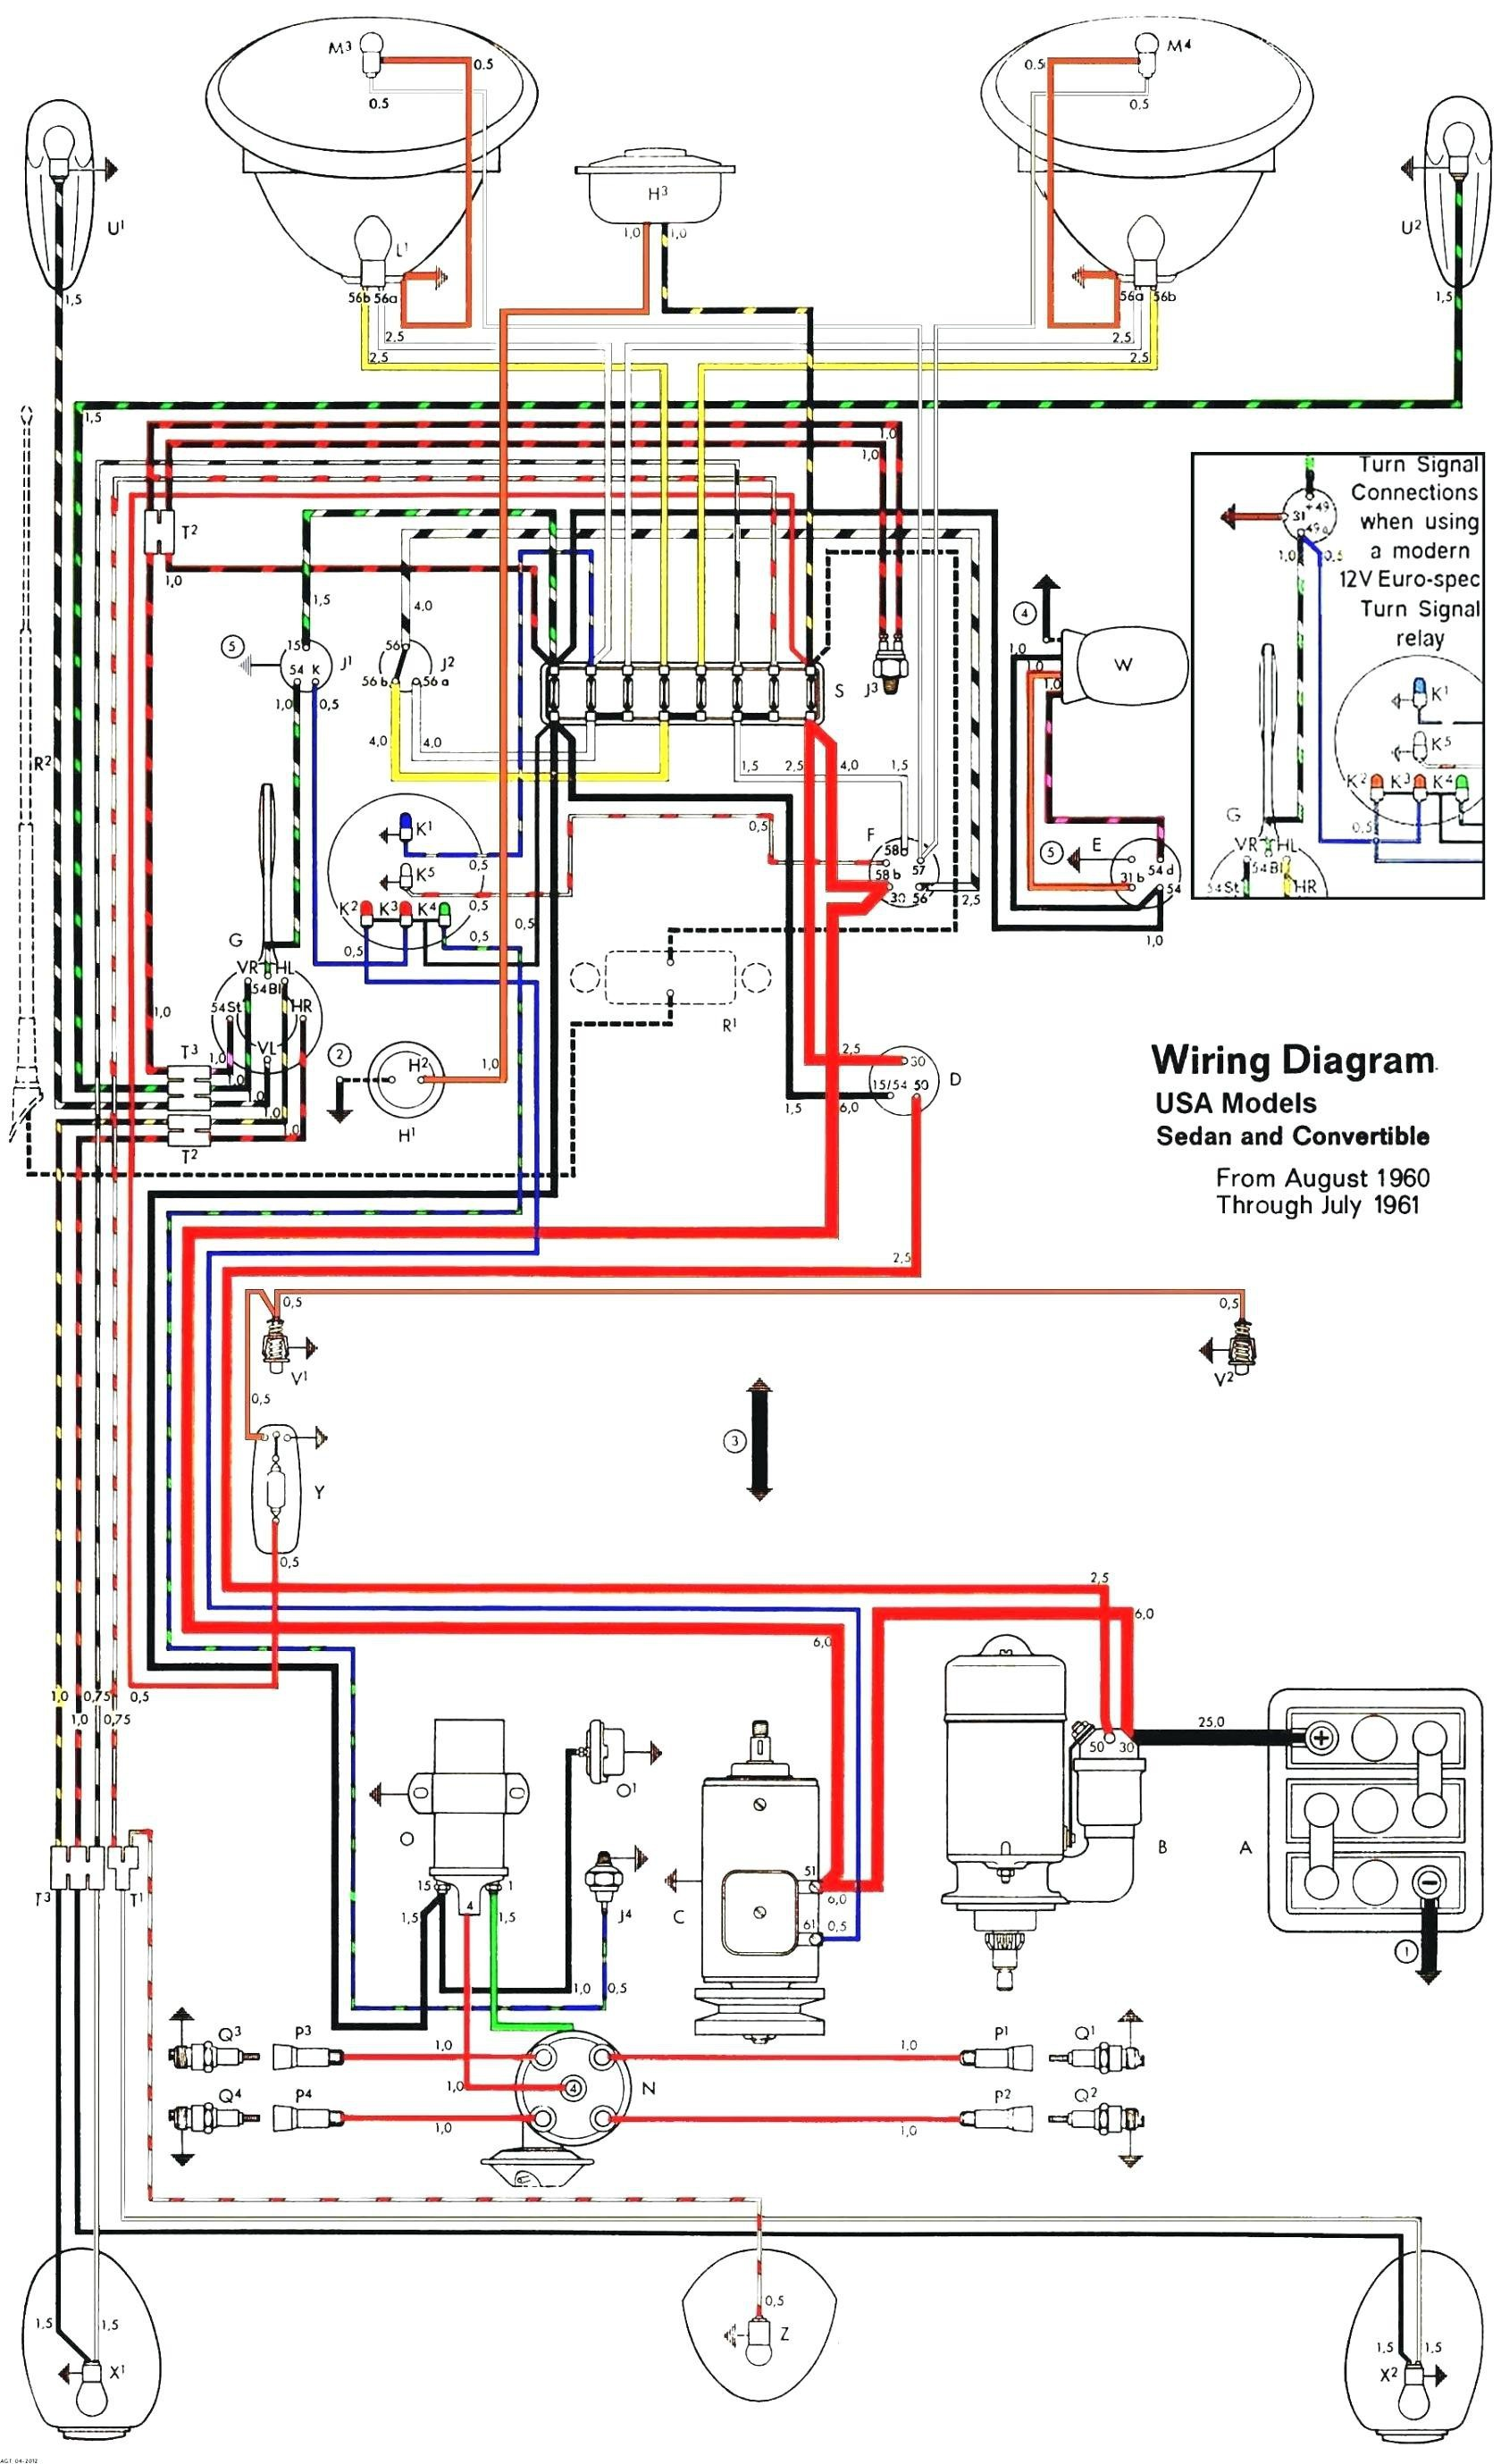 on q le grand rj45 wiring diagram electrical work wiring diagram u2022 rh wiringdiagramshop today Cat6 Wiring Diagrams RJ11 CAT5 Wiring-Diagram